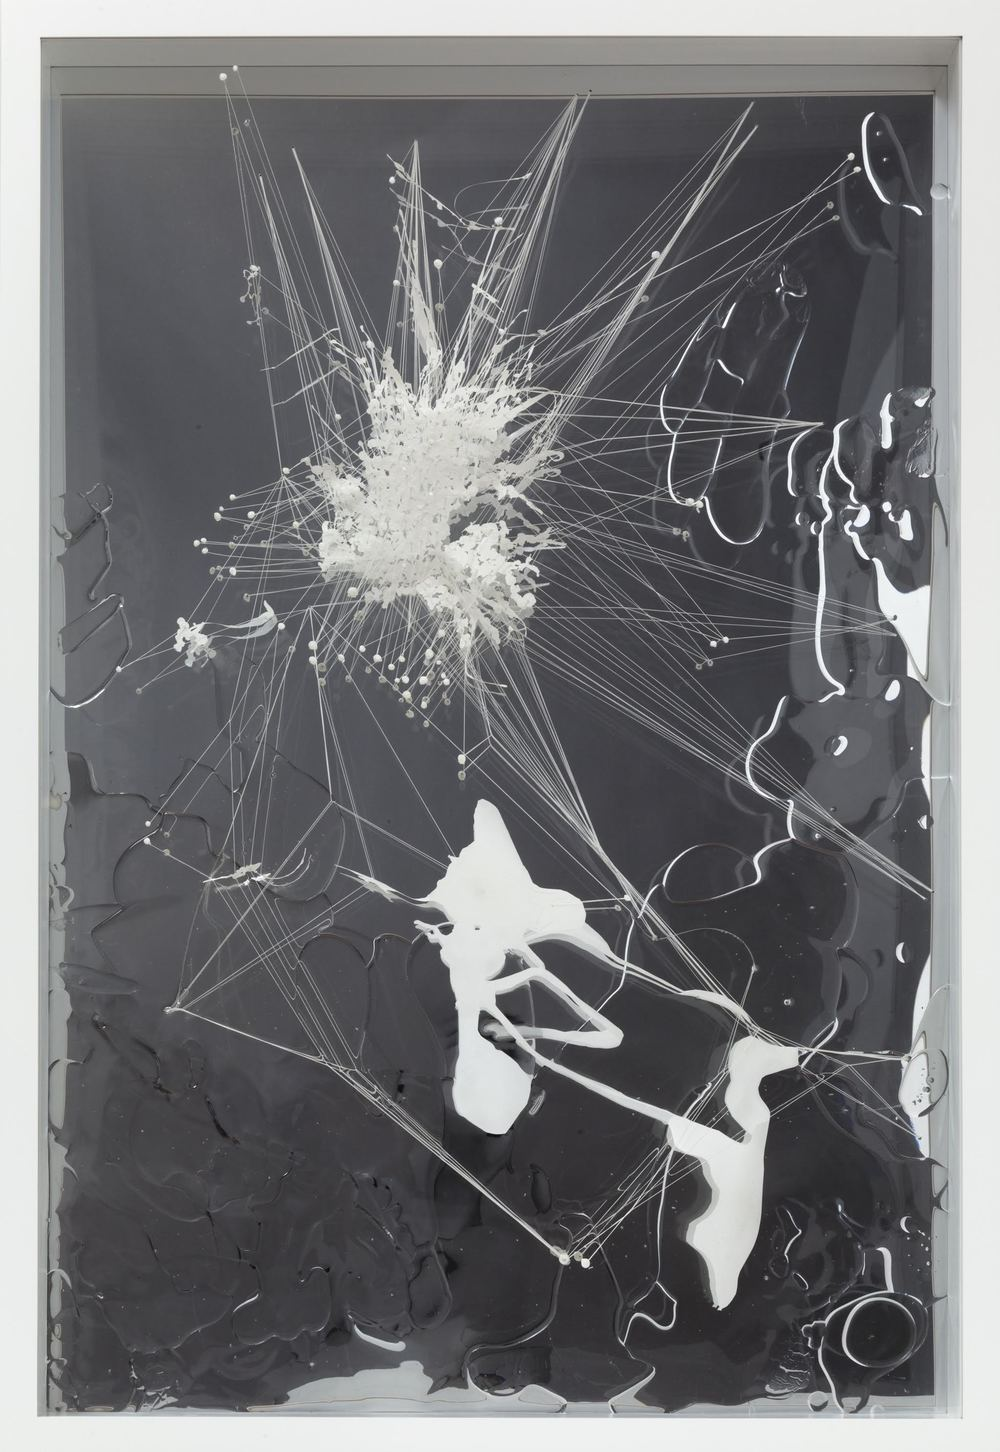 Stuck,  2010  Acrylic, mylar, thread, plexi-glass  50 x 34 inches